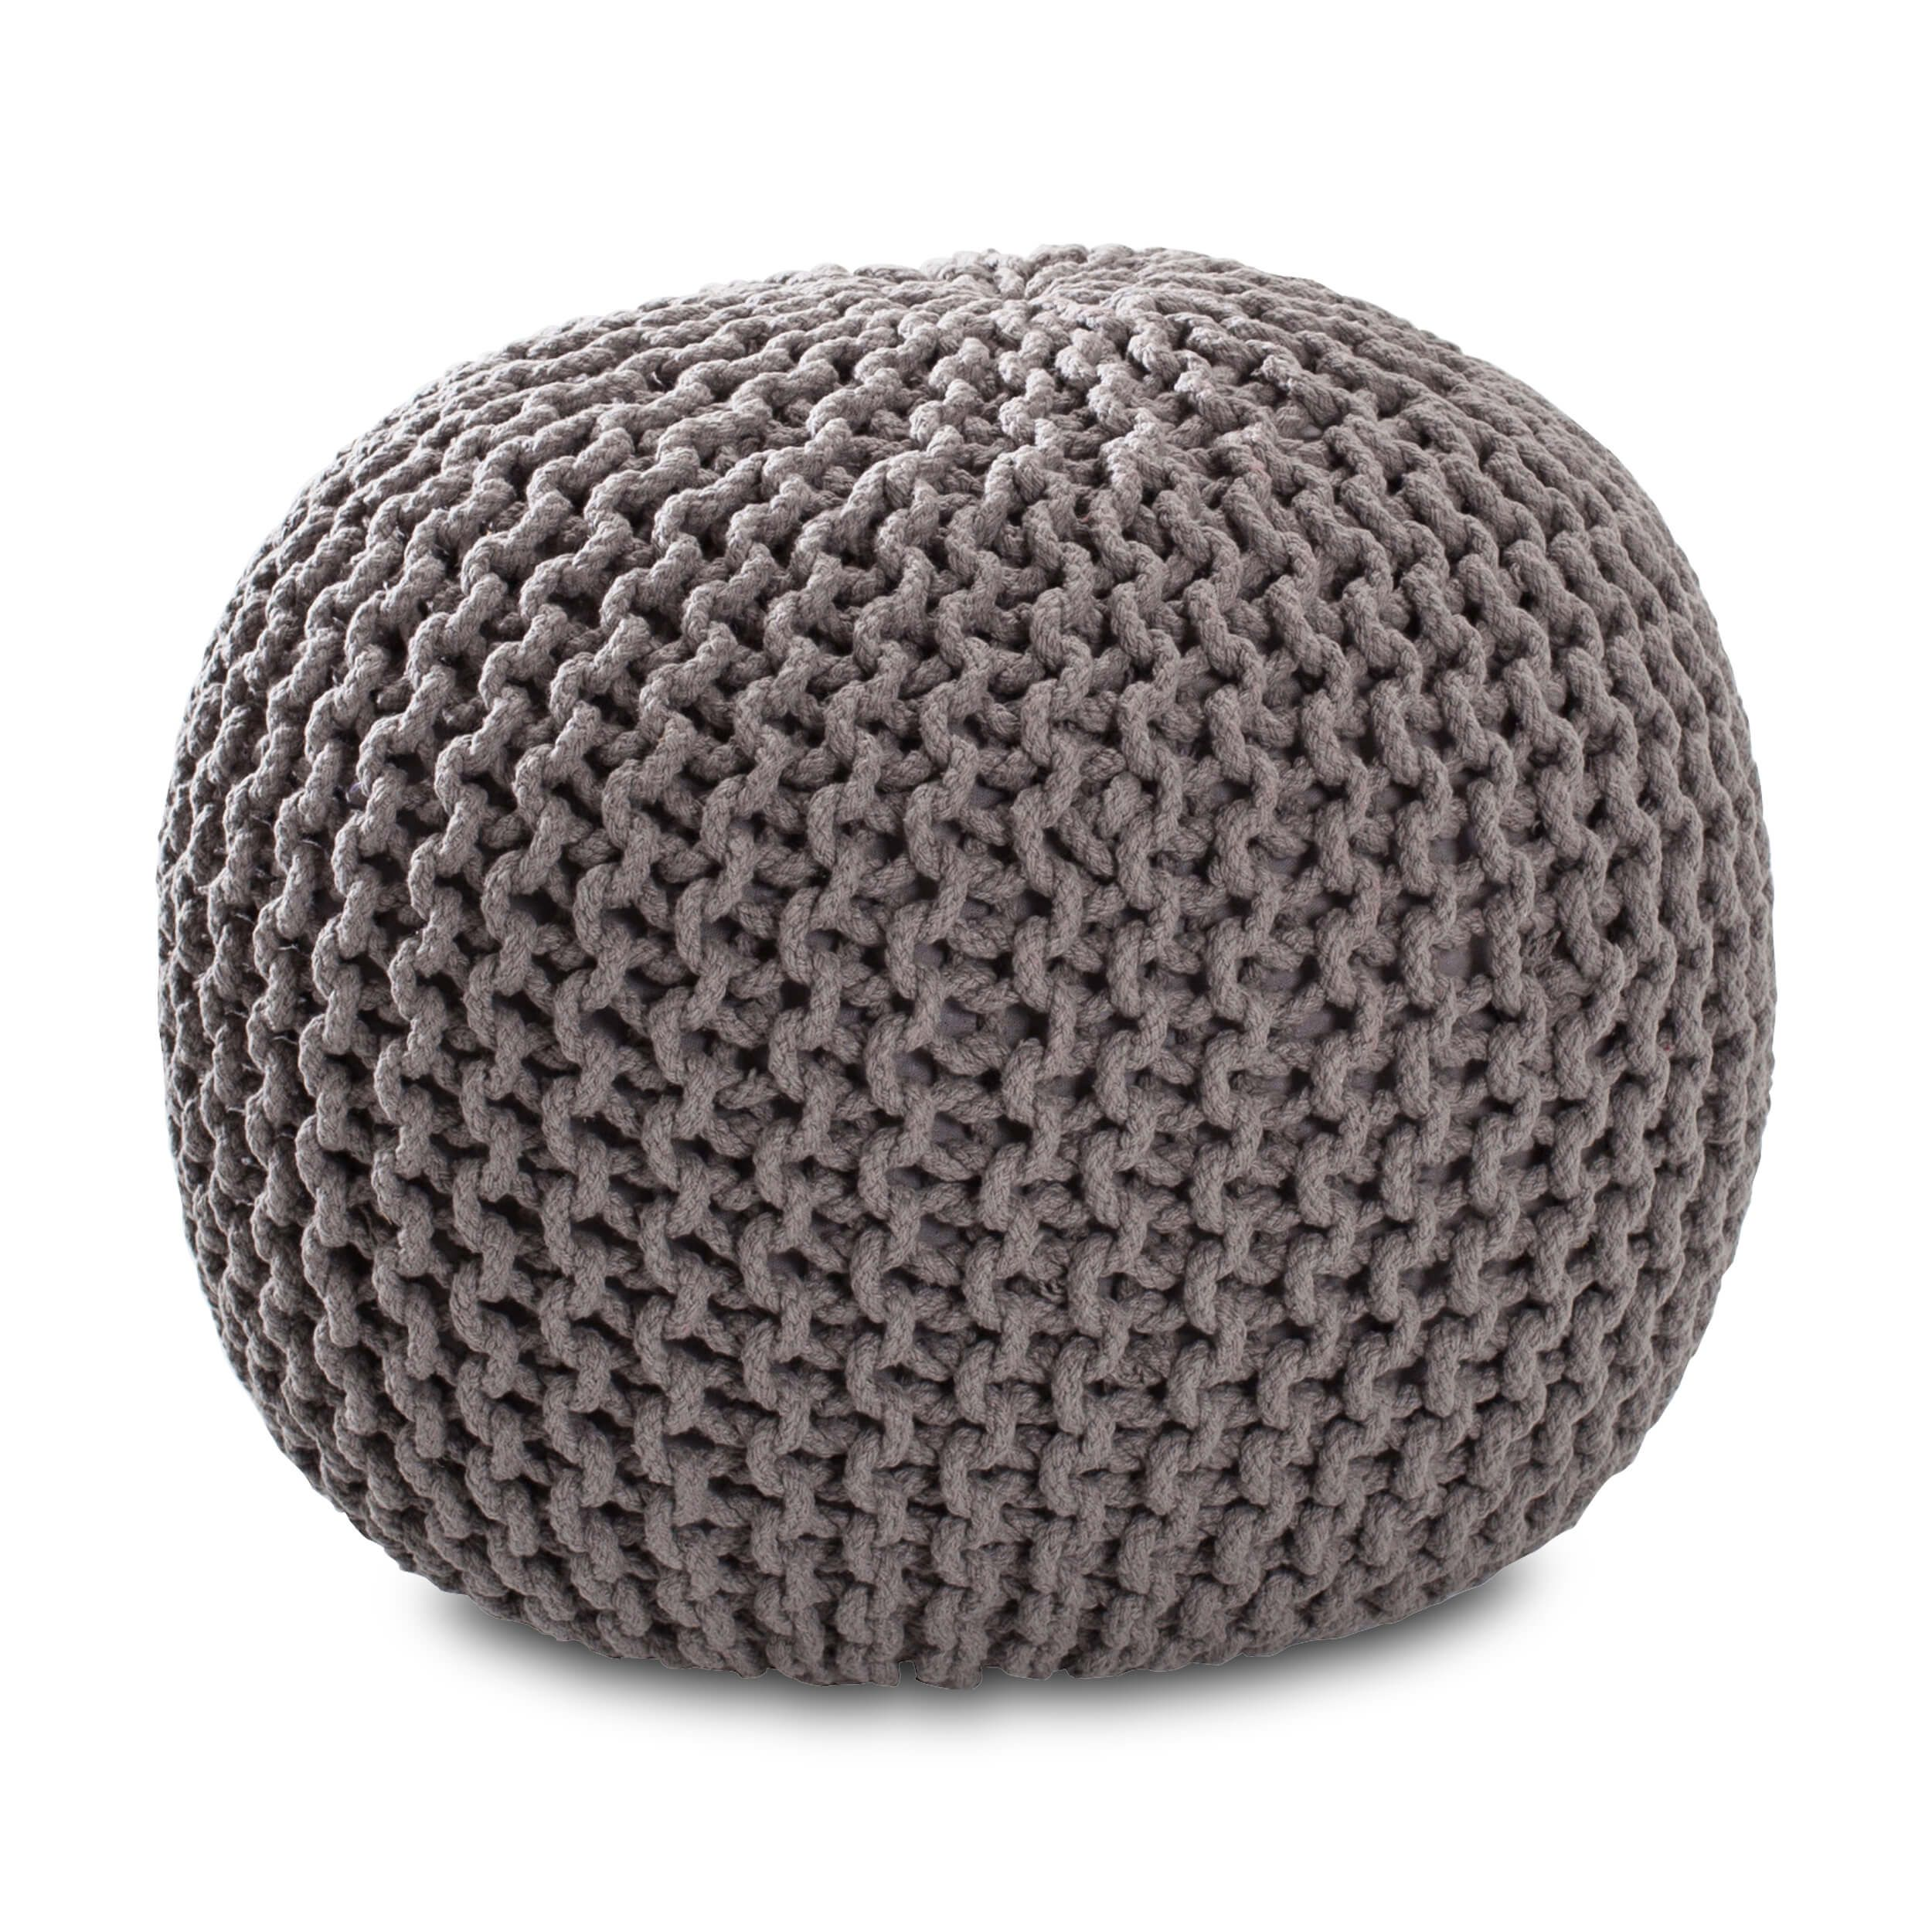 This Soft Handknit Pouf Can Be Used As An Ottoman Or Extra